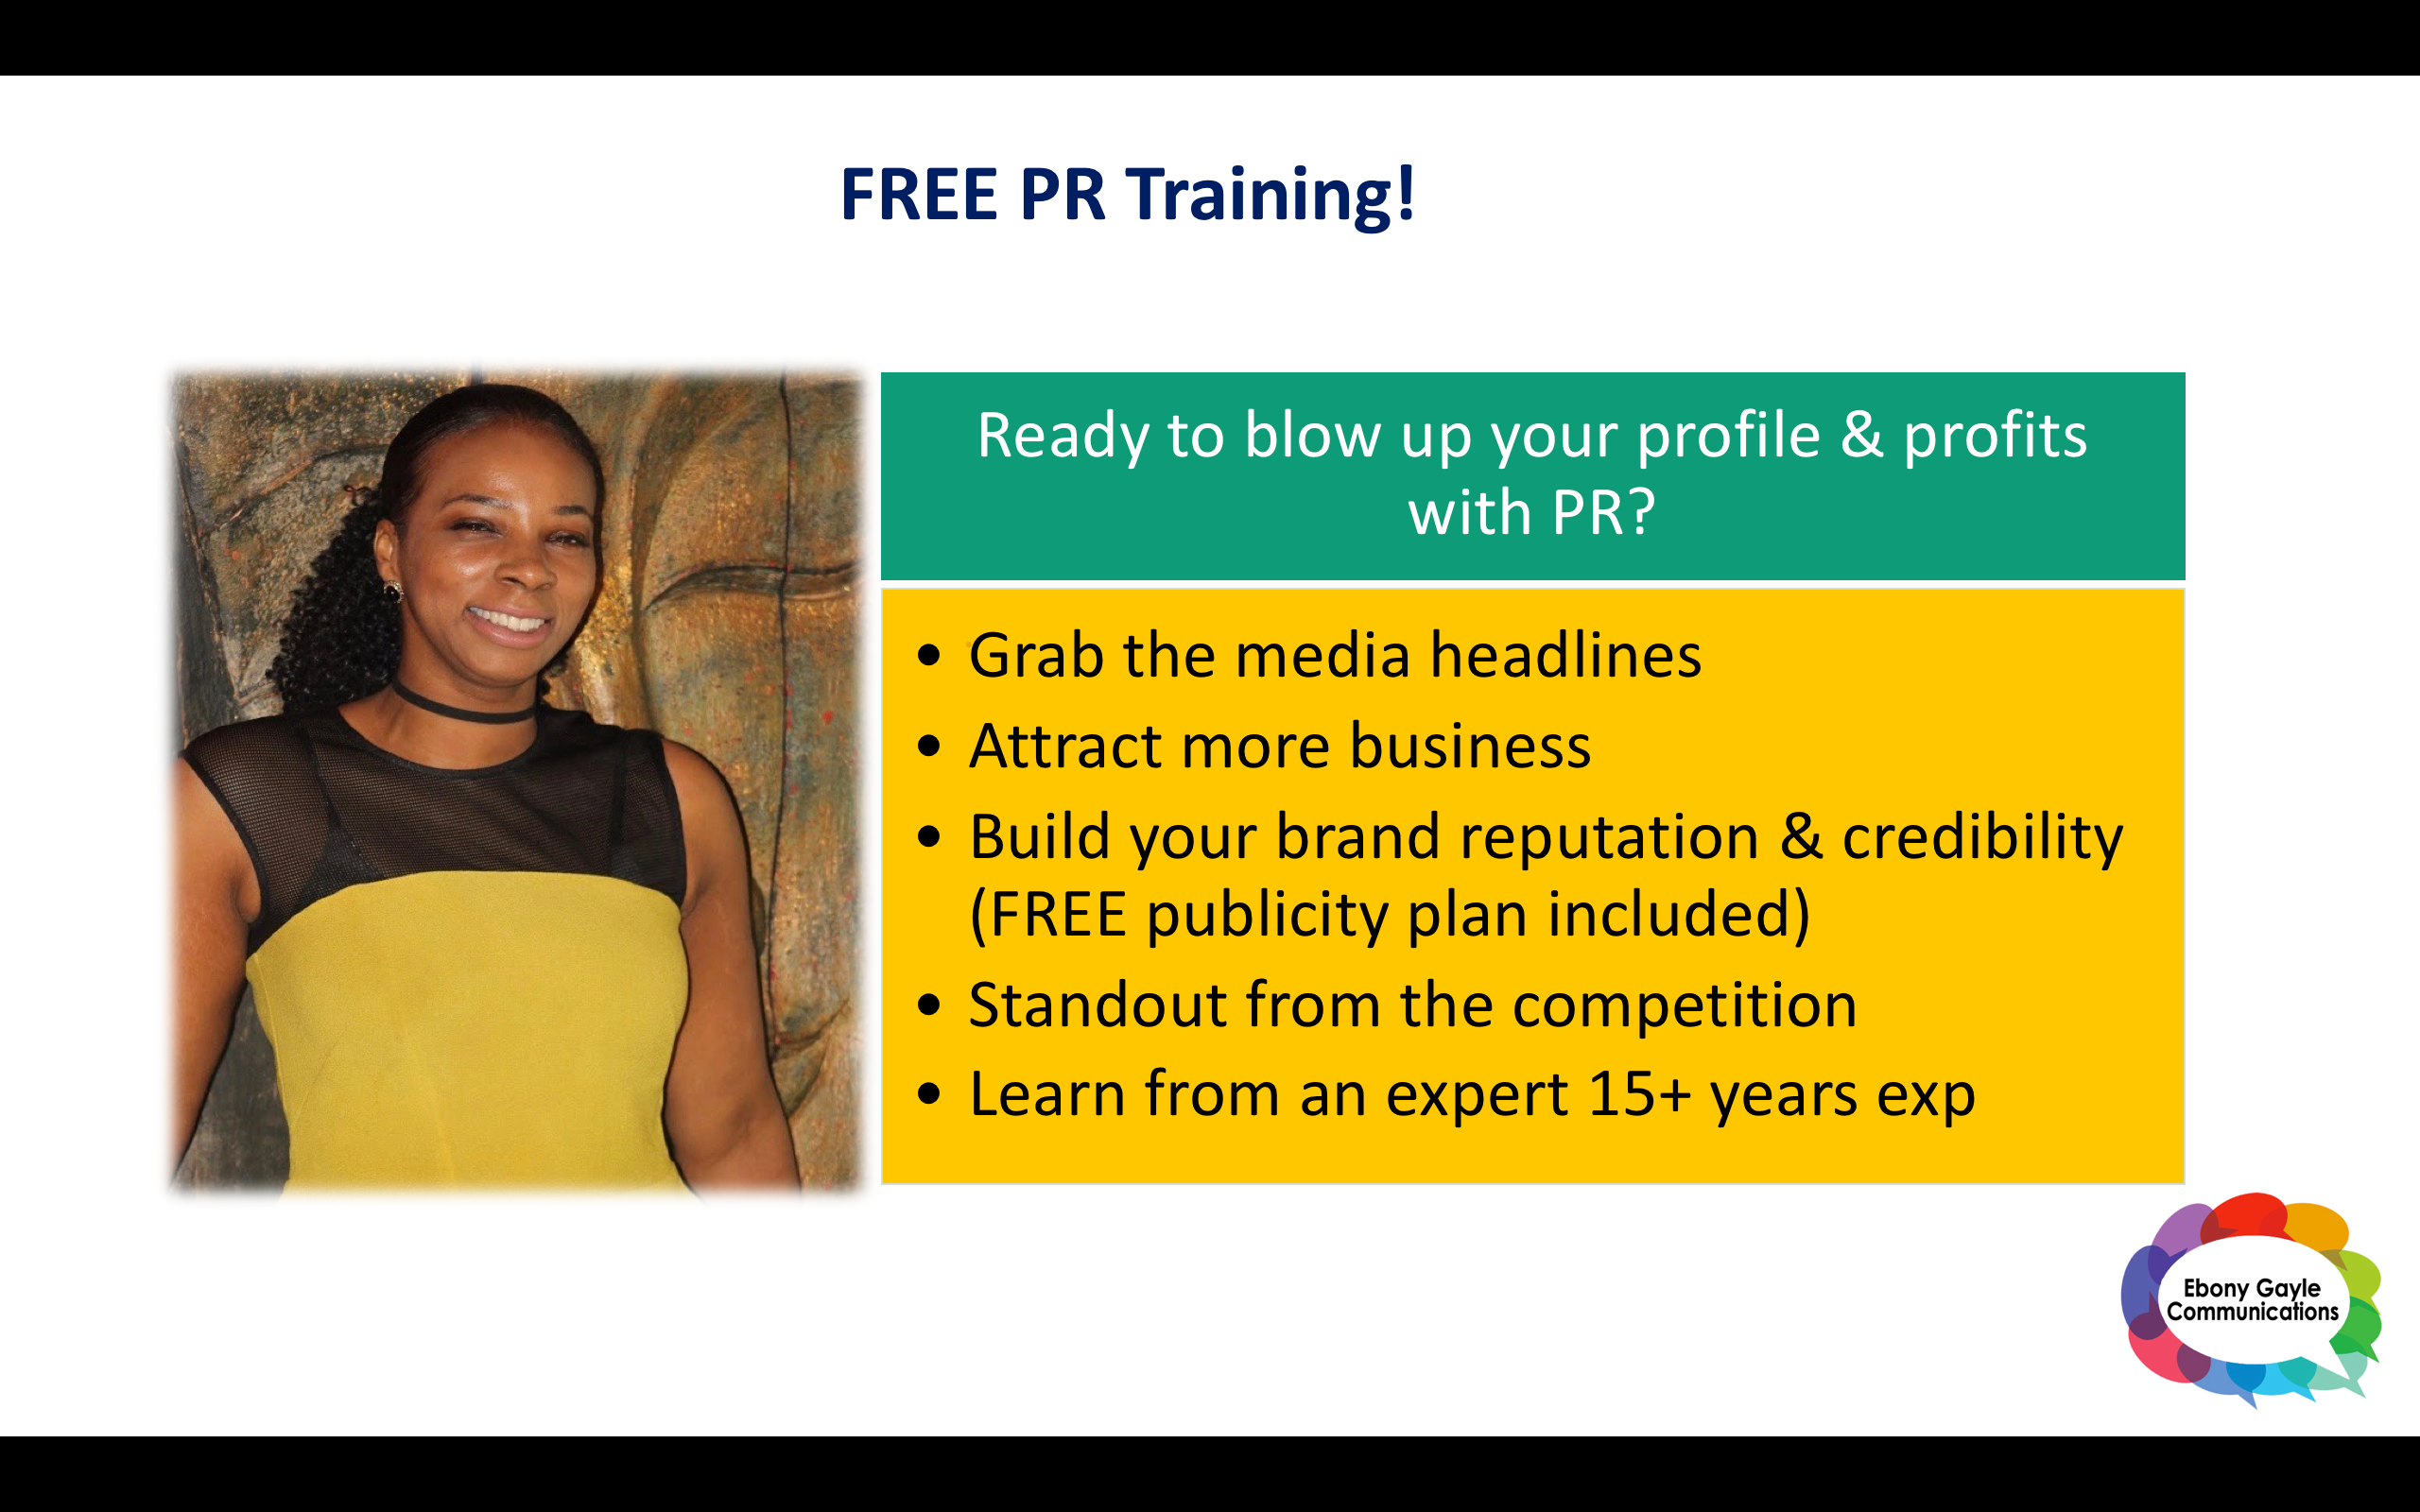 Blow up your profile & profits with PR Webinar - free training